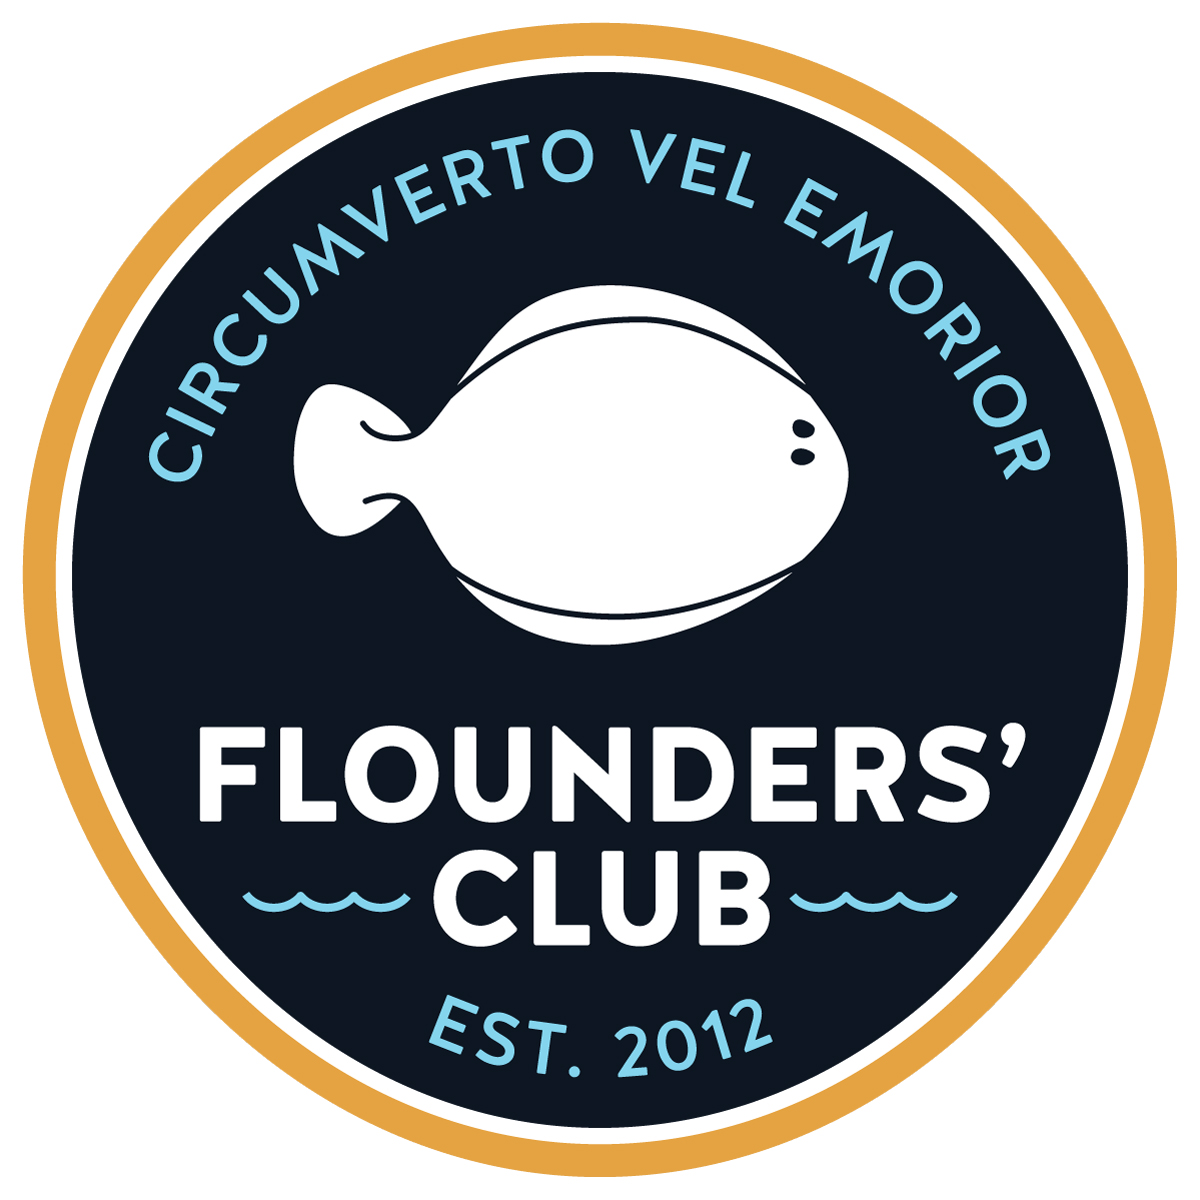 Flounders' Club